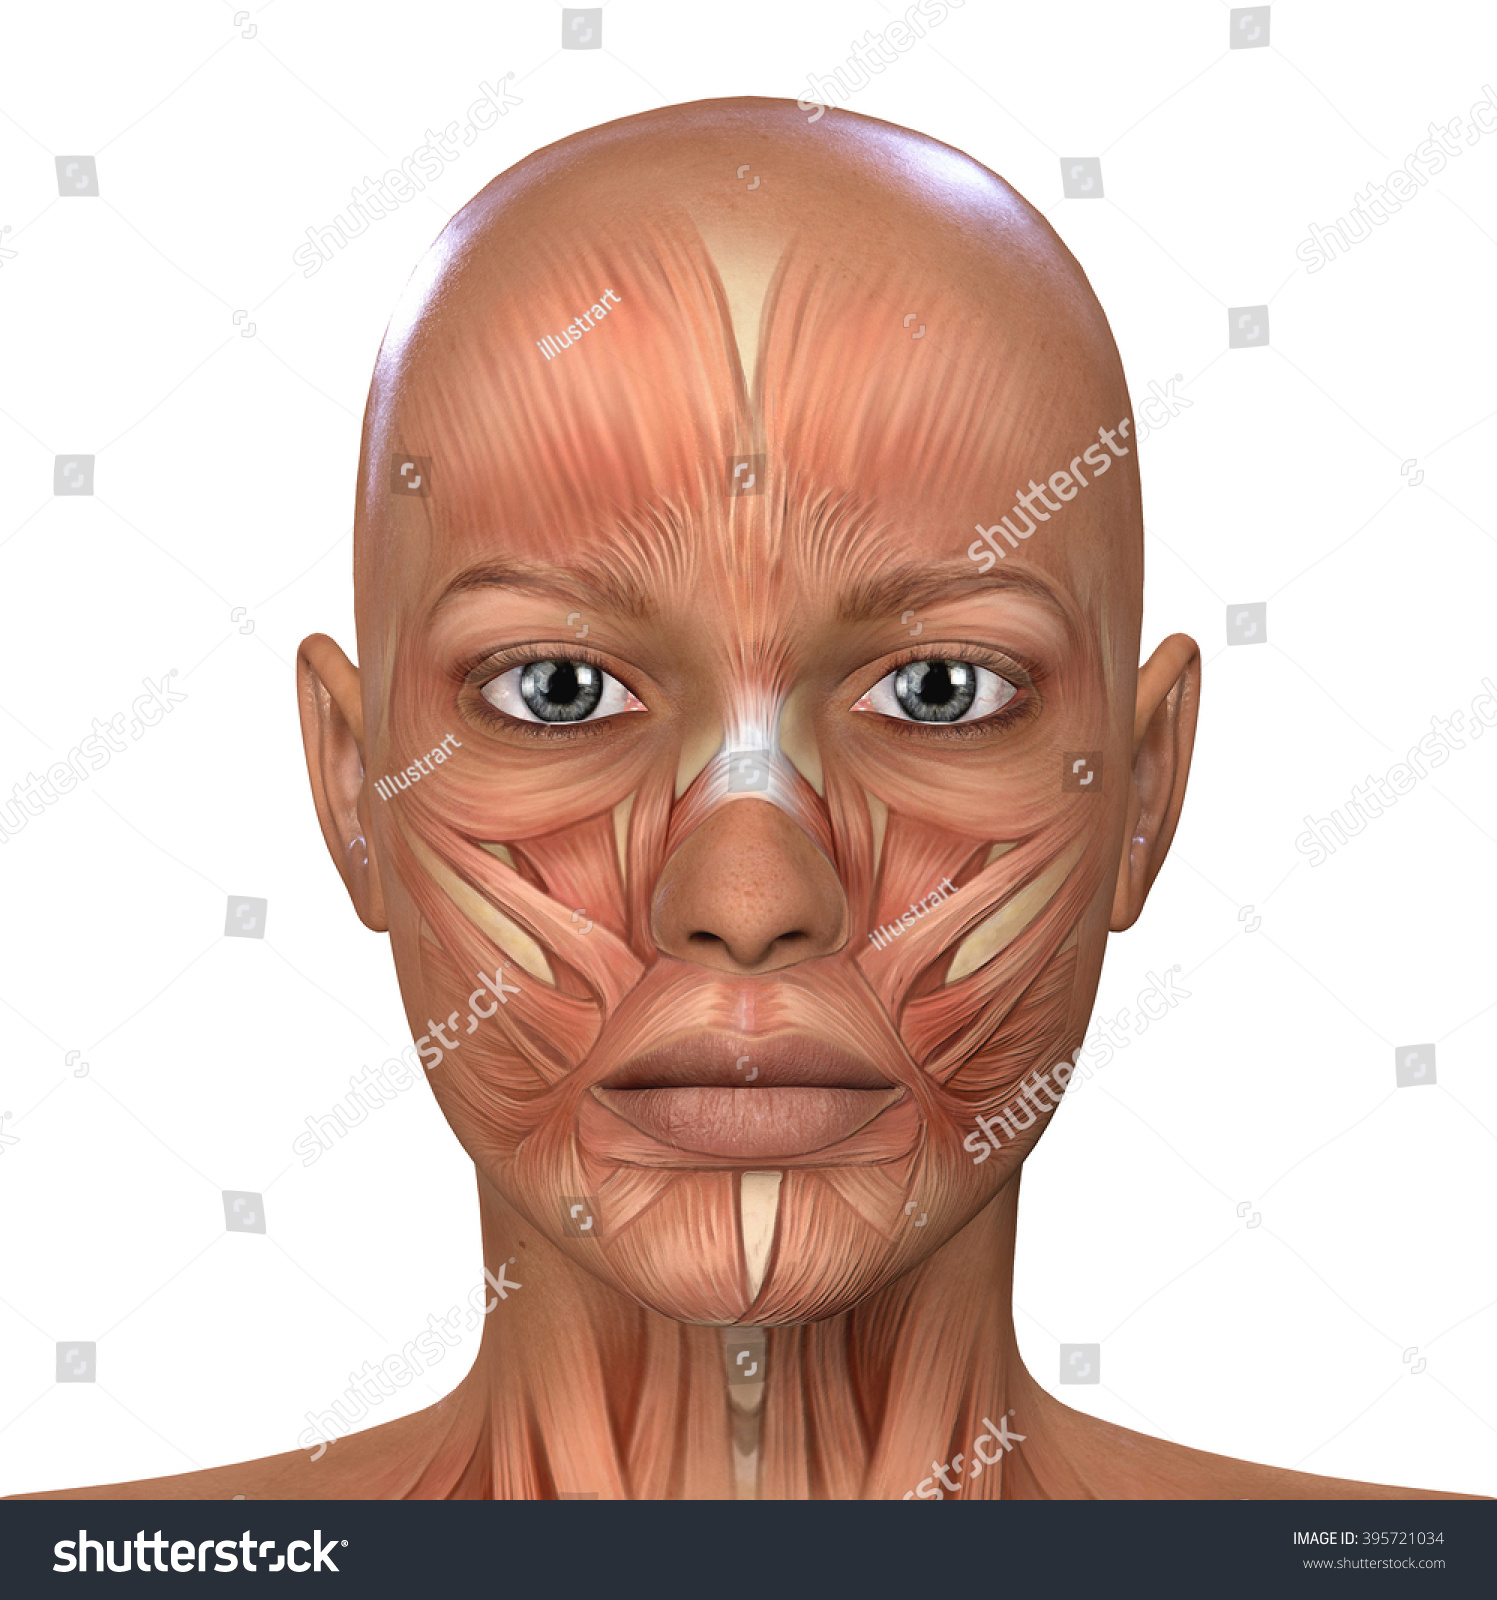 Female Face Muscles Anatomy Stock Illustration 395721034 - Shutterstock